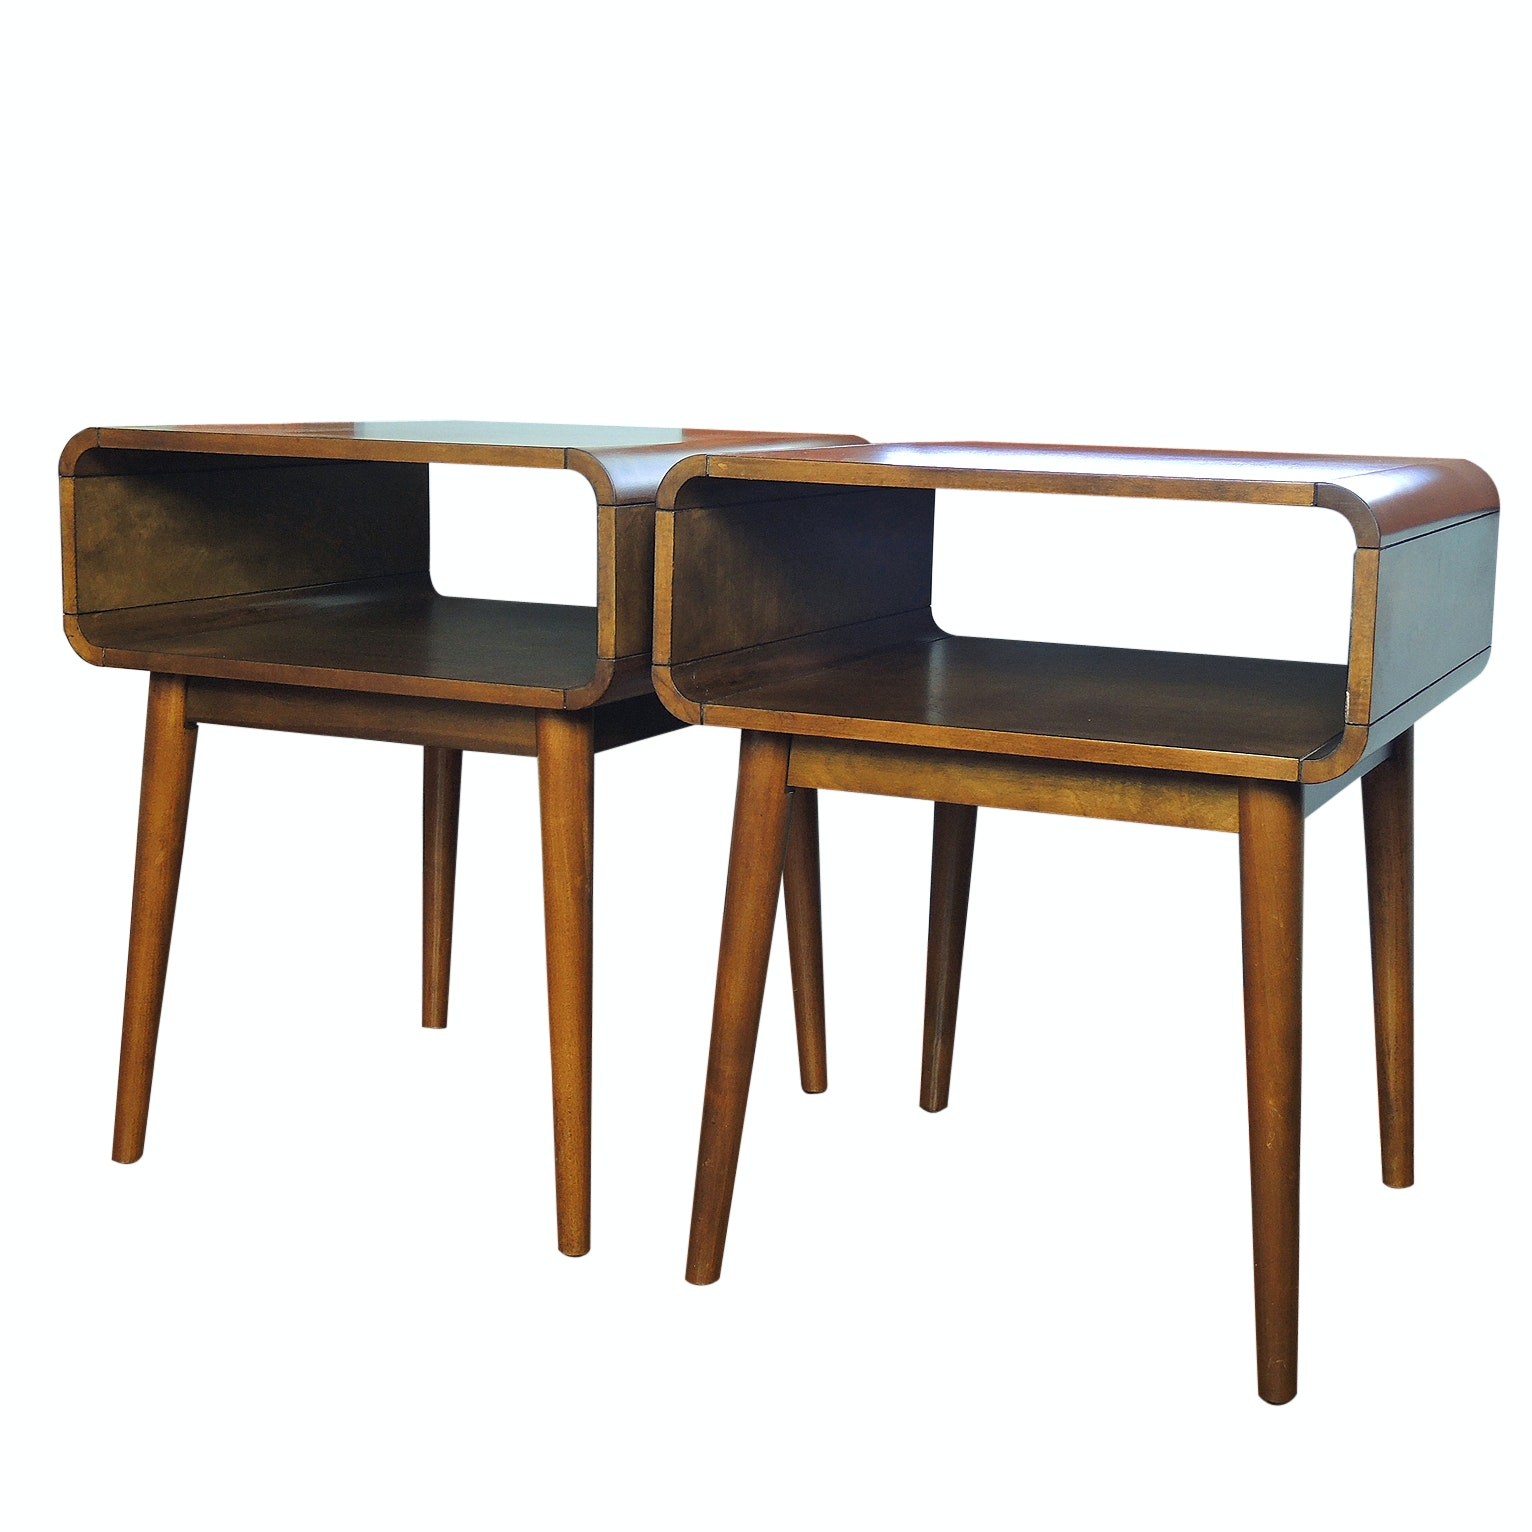 Mid Century Modern Style End Tables, 21st Century